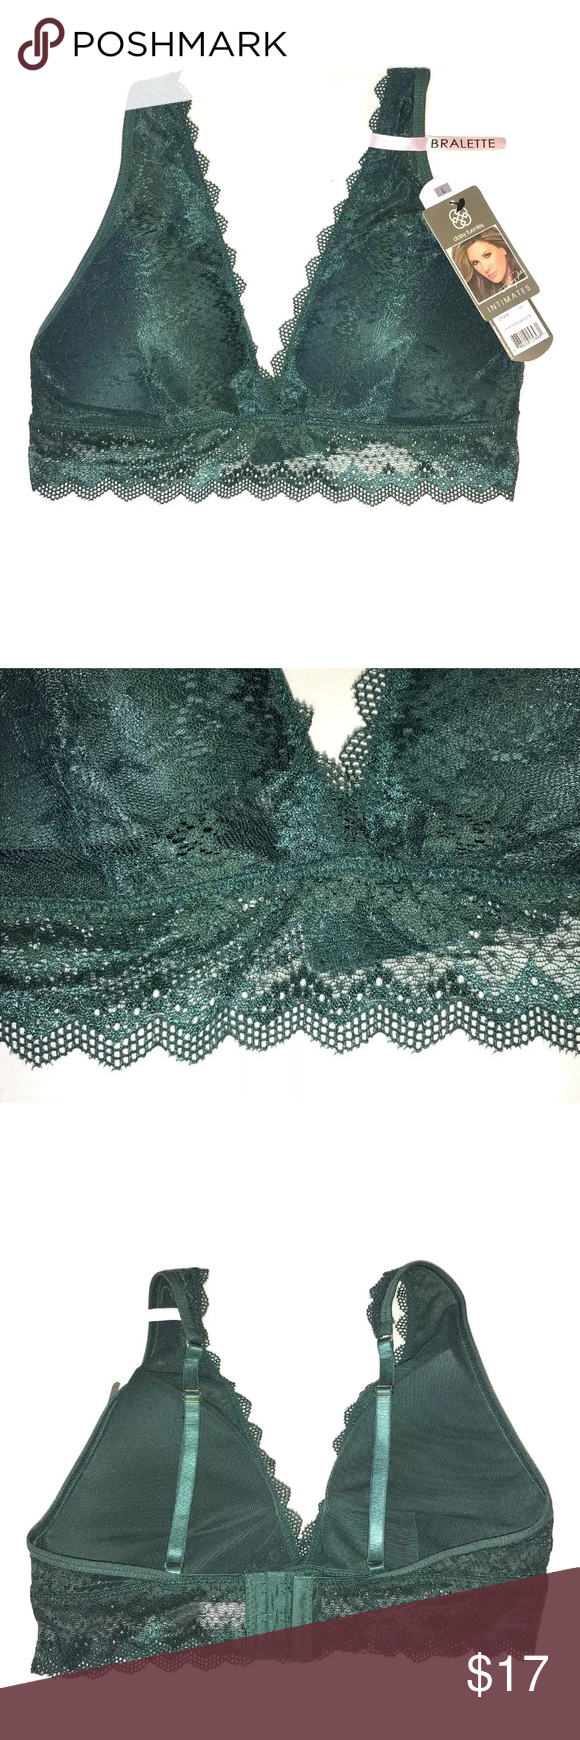 969e6a19b6a18 Daisy Fuentes High Apex Lace Padded Bralette Daisy Fuentes High Apex Lace  Padded Bralette Non Removable